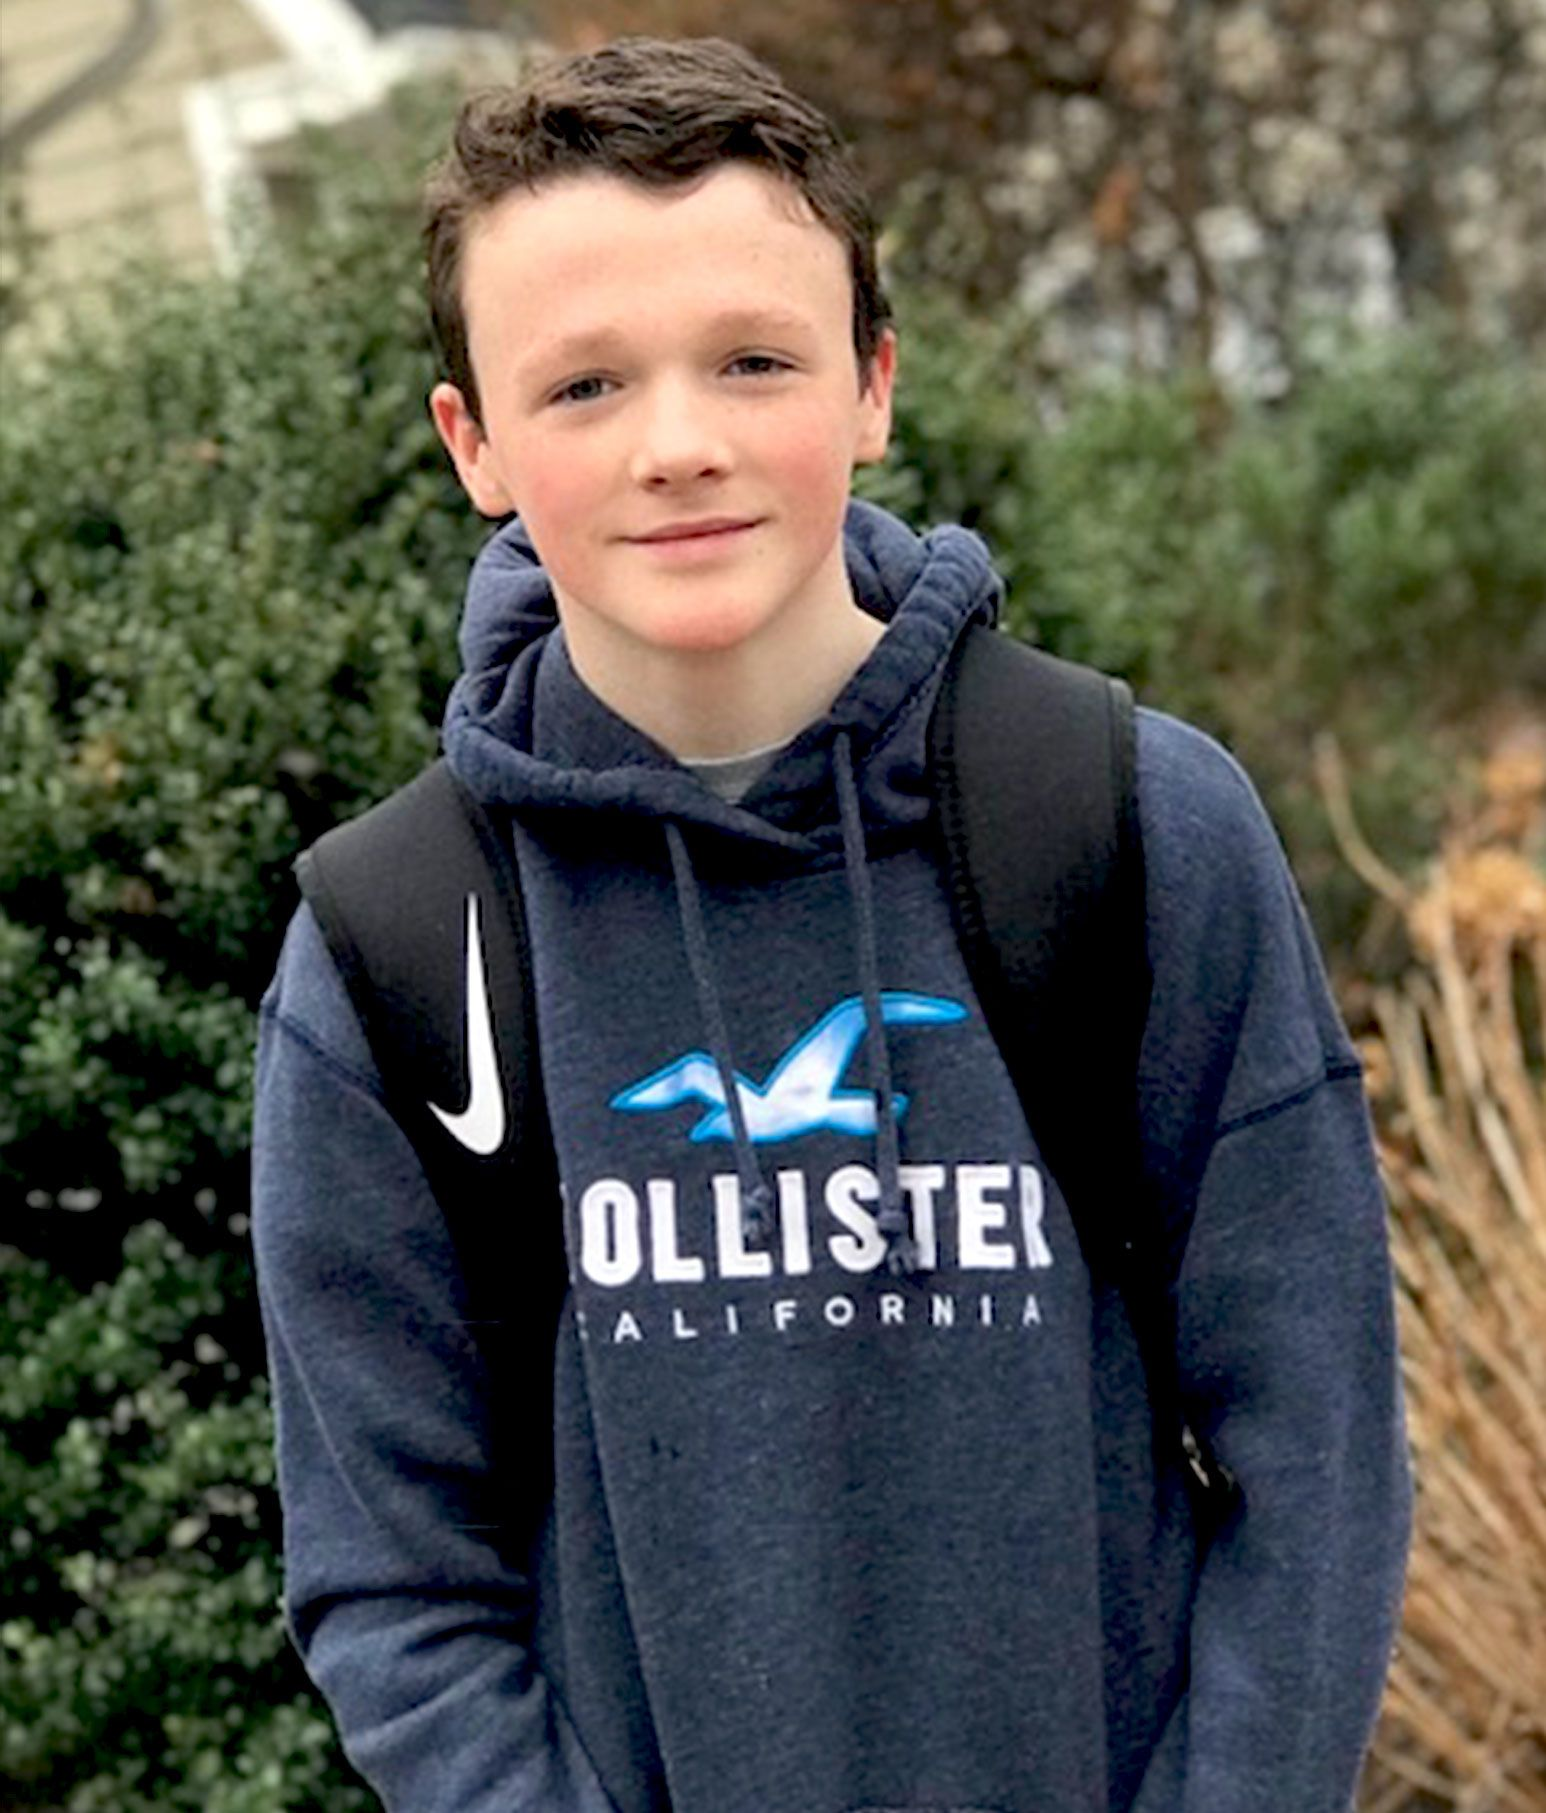 A teenage boy in a grey Hollister hoodie and bookbag smiles for the camera.